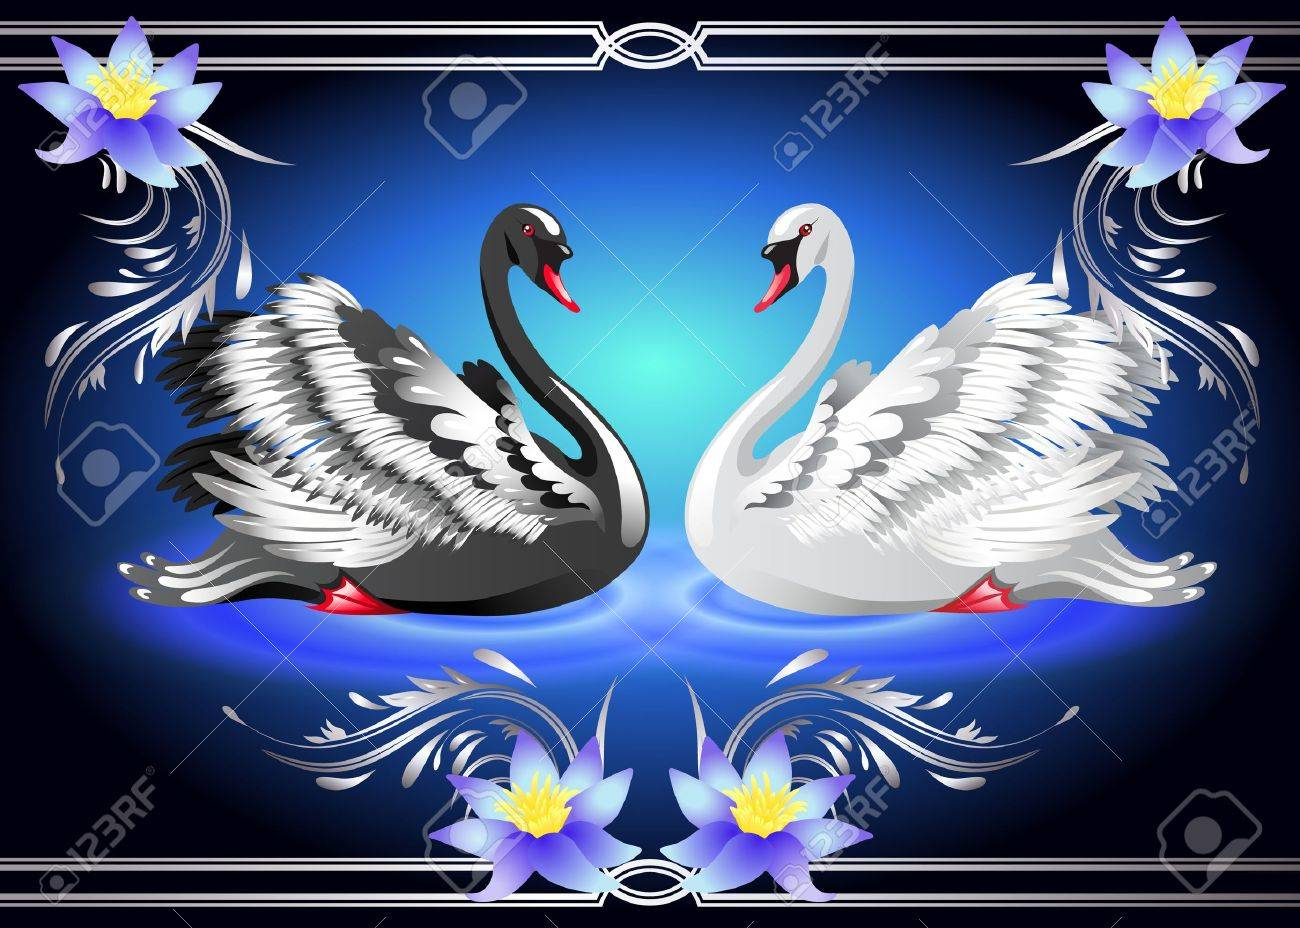 Elegant white and black swan on blue background with lilies - 13912996